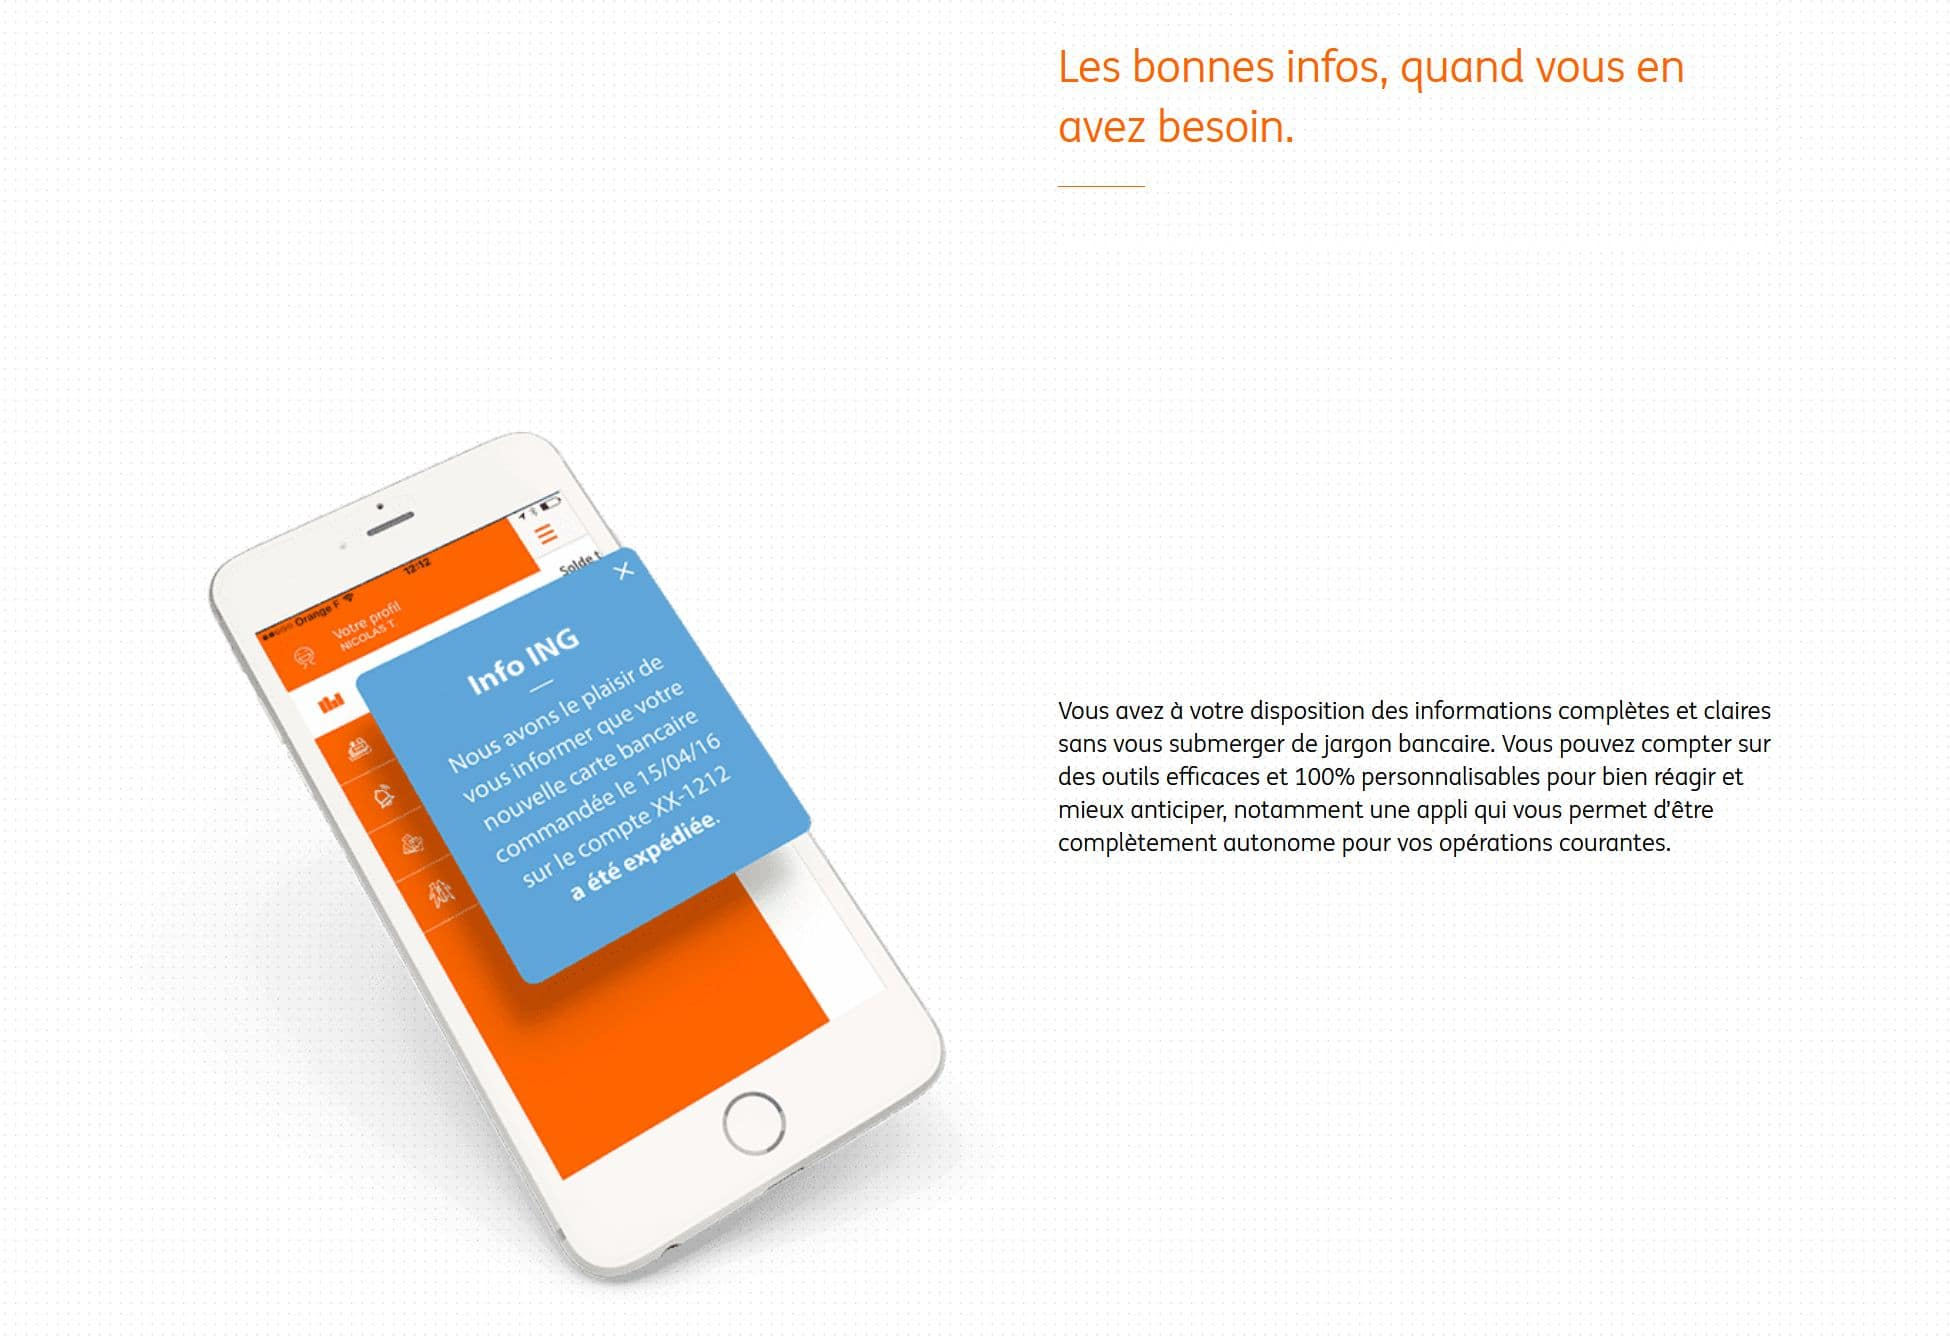 application de la banque ing